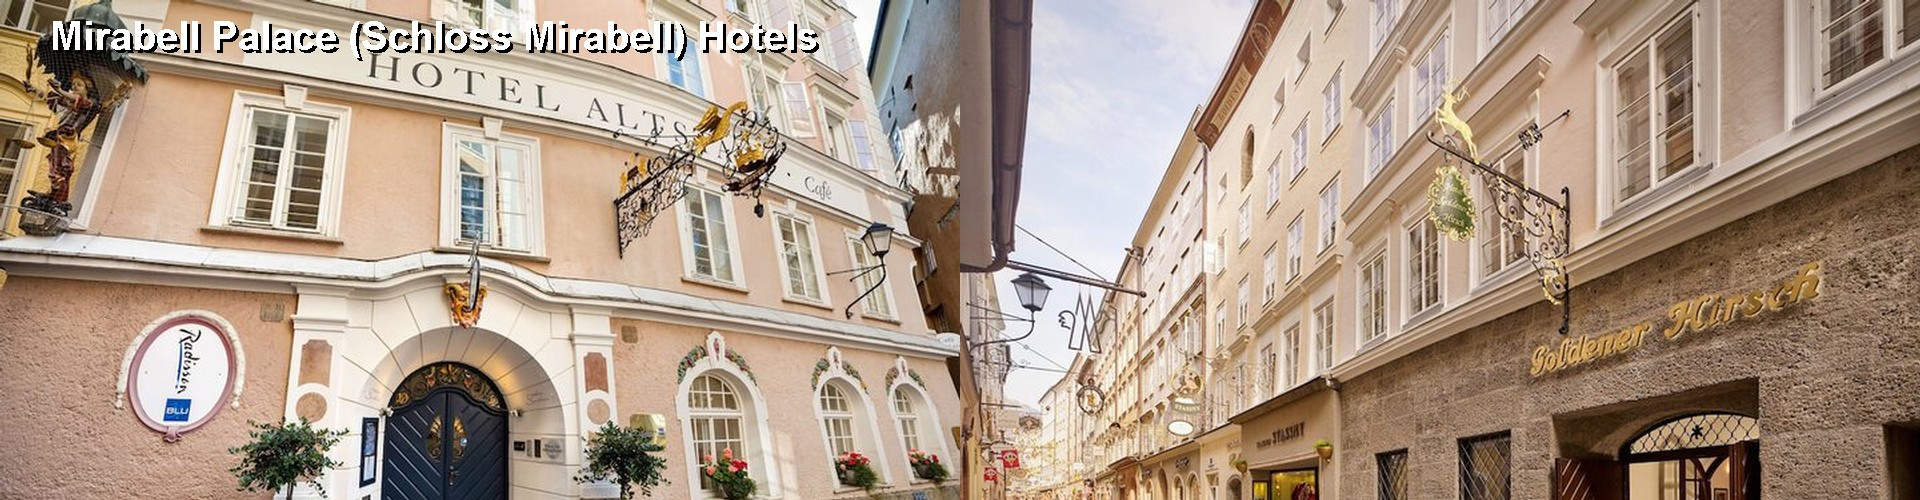 5 Best Hotels near Mirabell Palace (Schloss Mirabell)